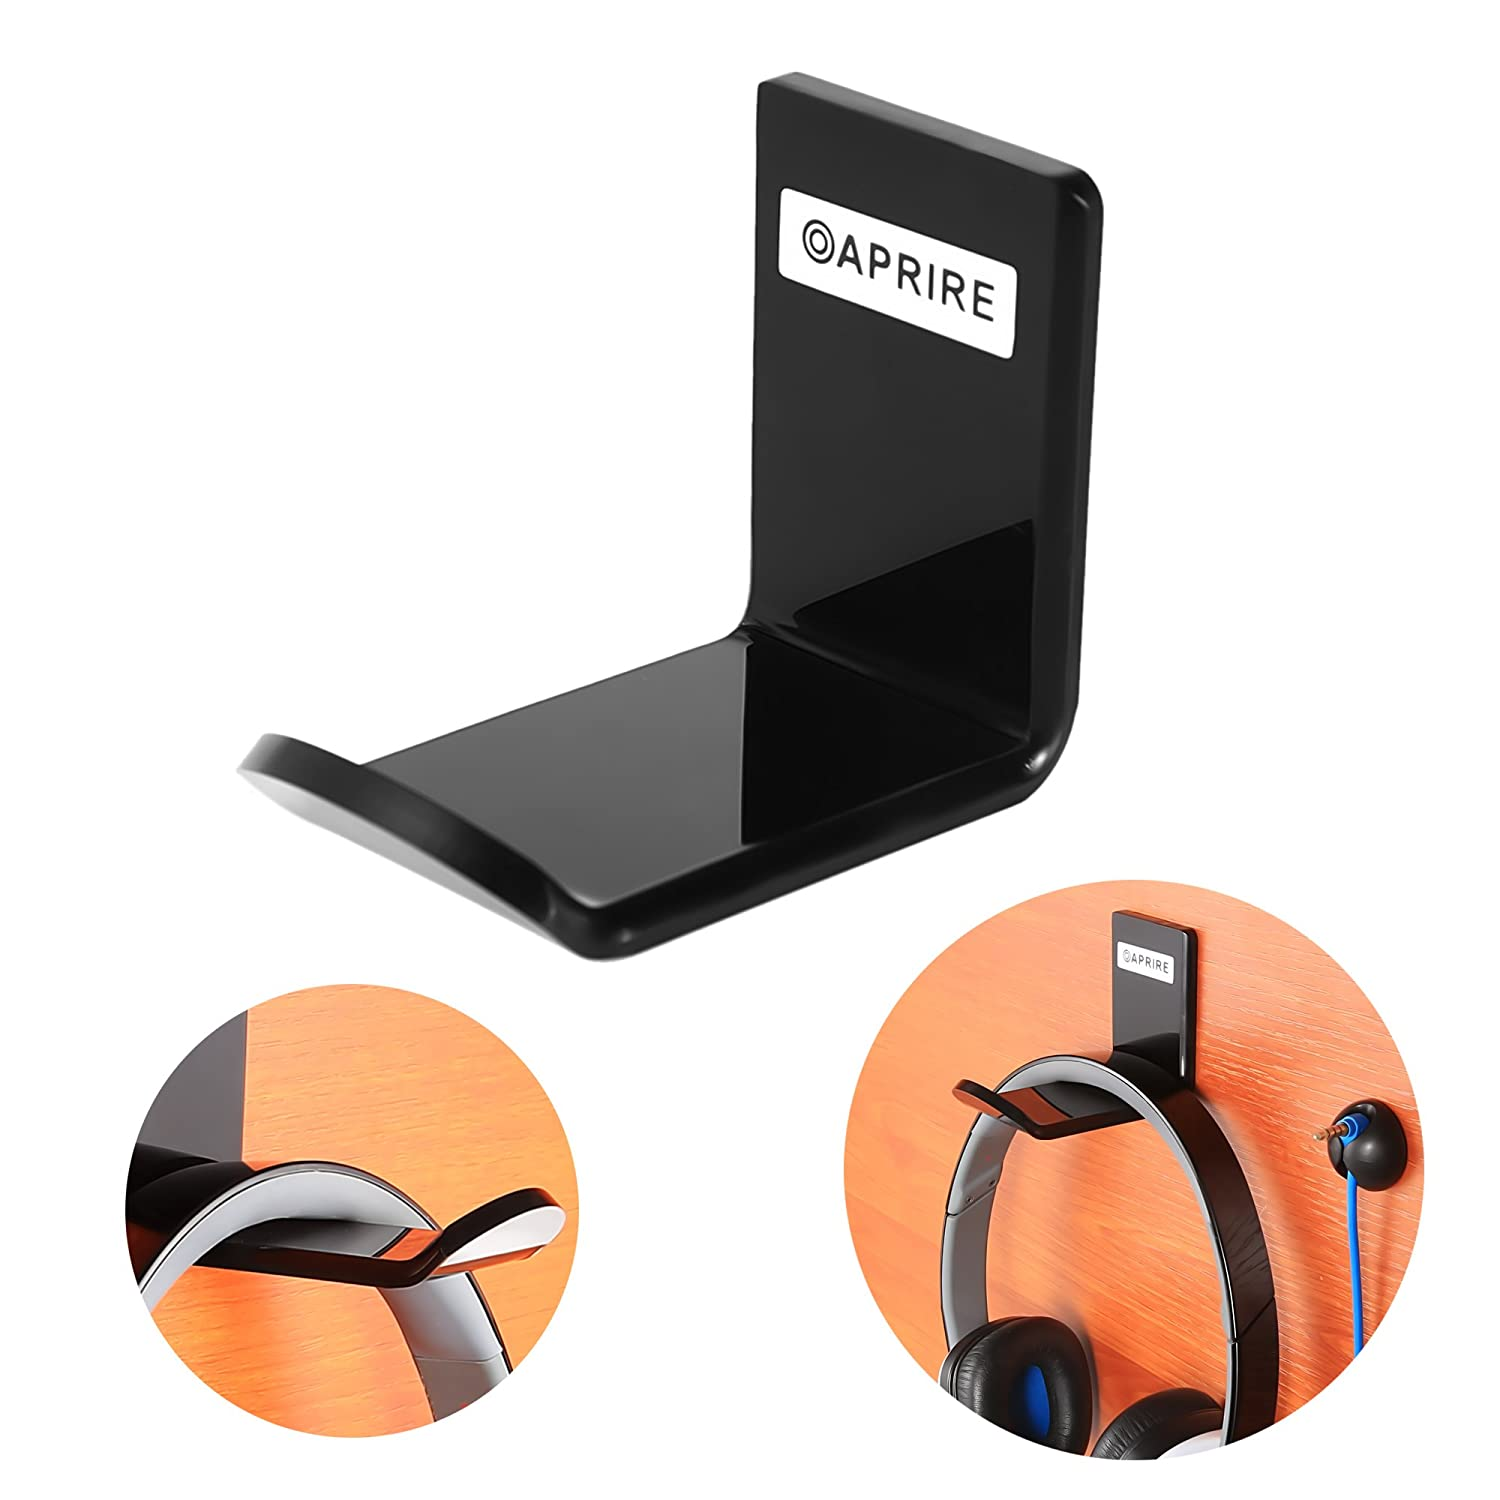 Headphone Stand Hanger Wall Mount - Pack of 2 OAPRIRE Acrylic Headphone Holder Hook, Stick-On Gaming Headset Stand with Cable Clips (Black) HH-88000